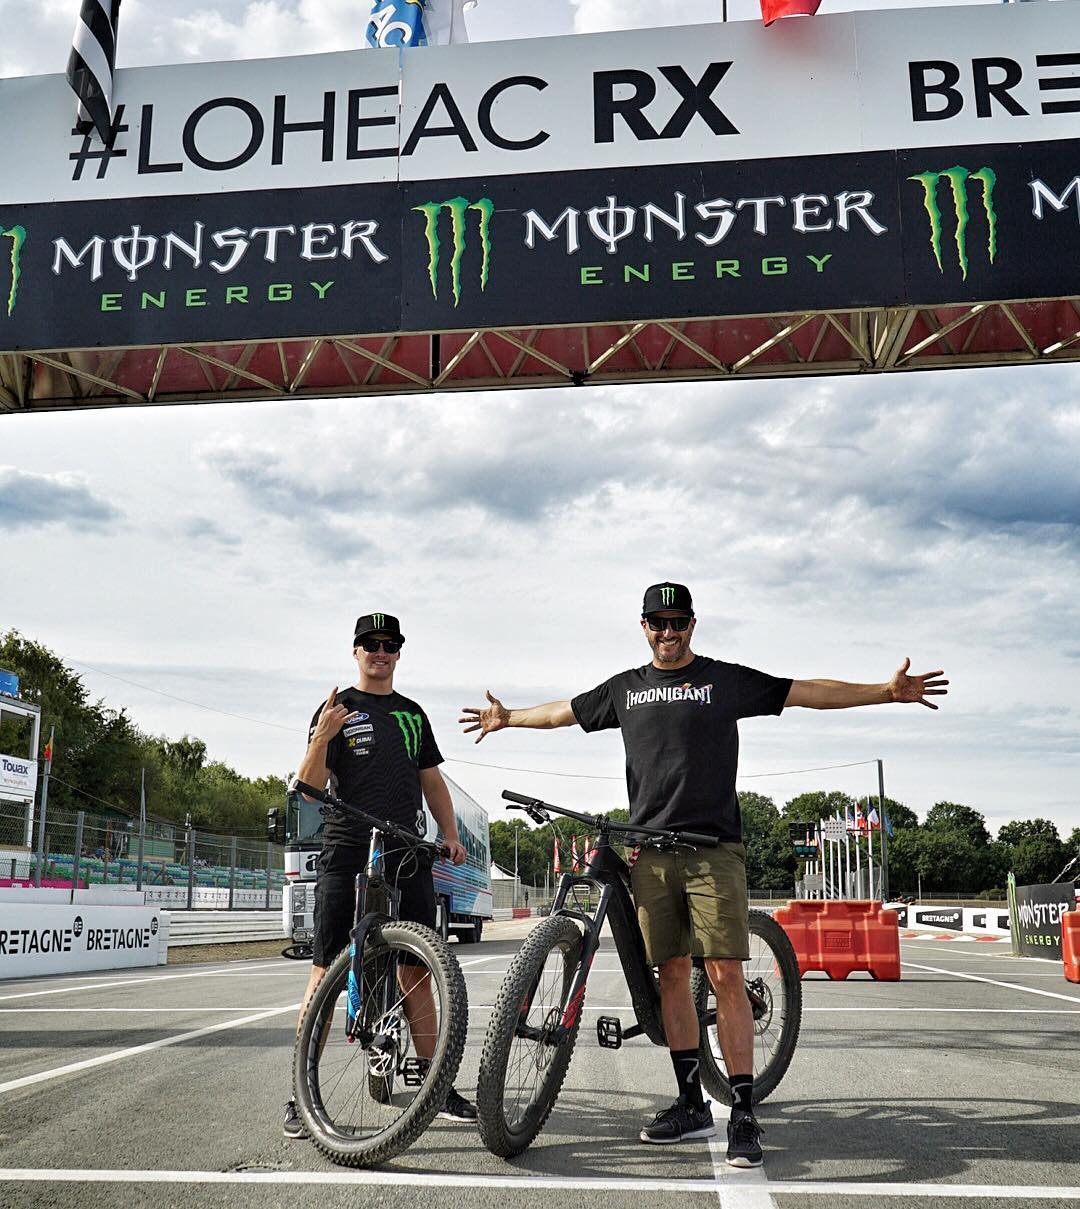 Track 'walk' (via these dope Specialized E-Levo bikes) done here at #LoheacRX with my Hoonigan Racing teammate @AndreasBakkerud. Stoked to race here again this weekend - and hopefully beat my current lap record! #LoheacRX #ouioui